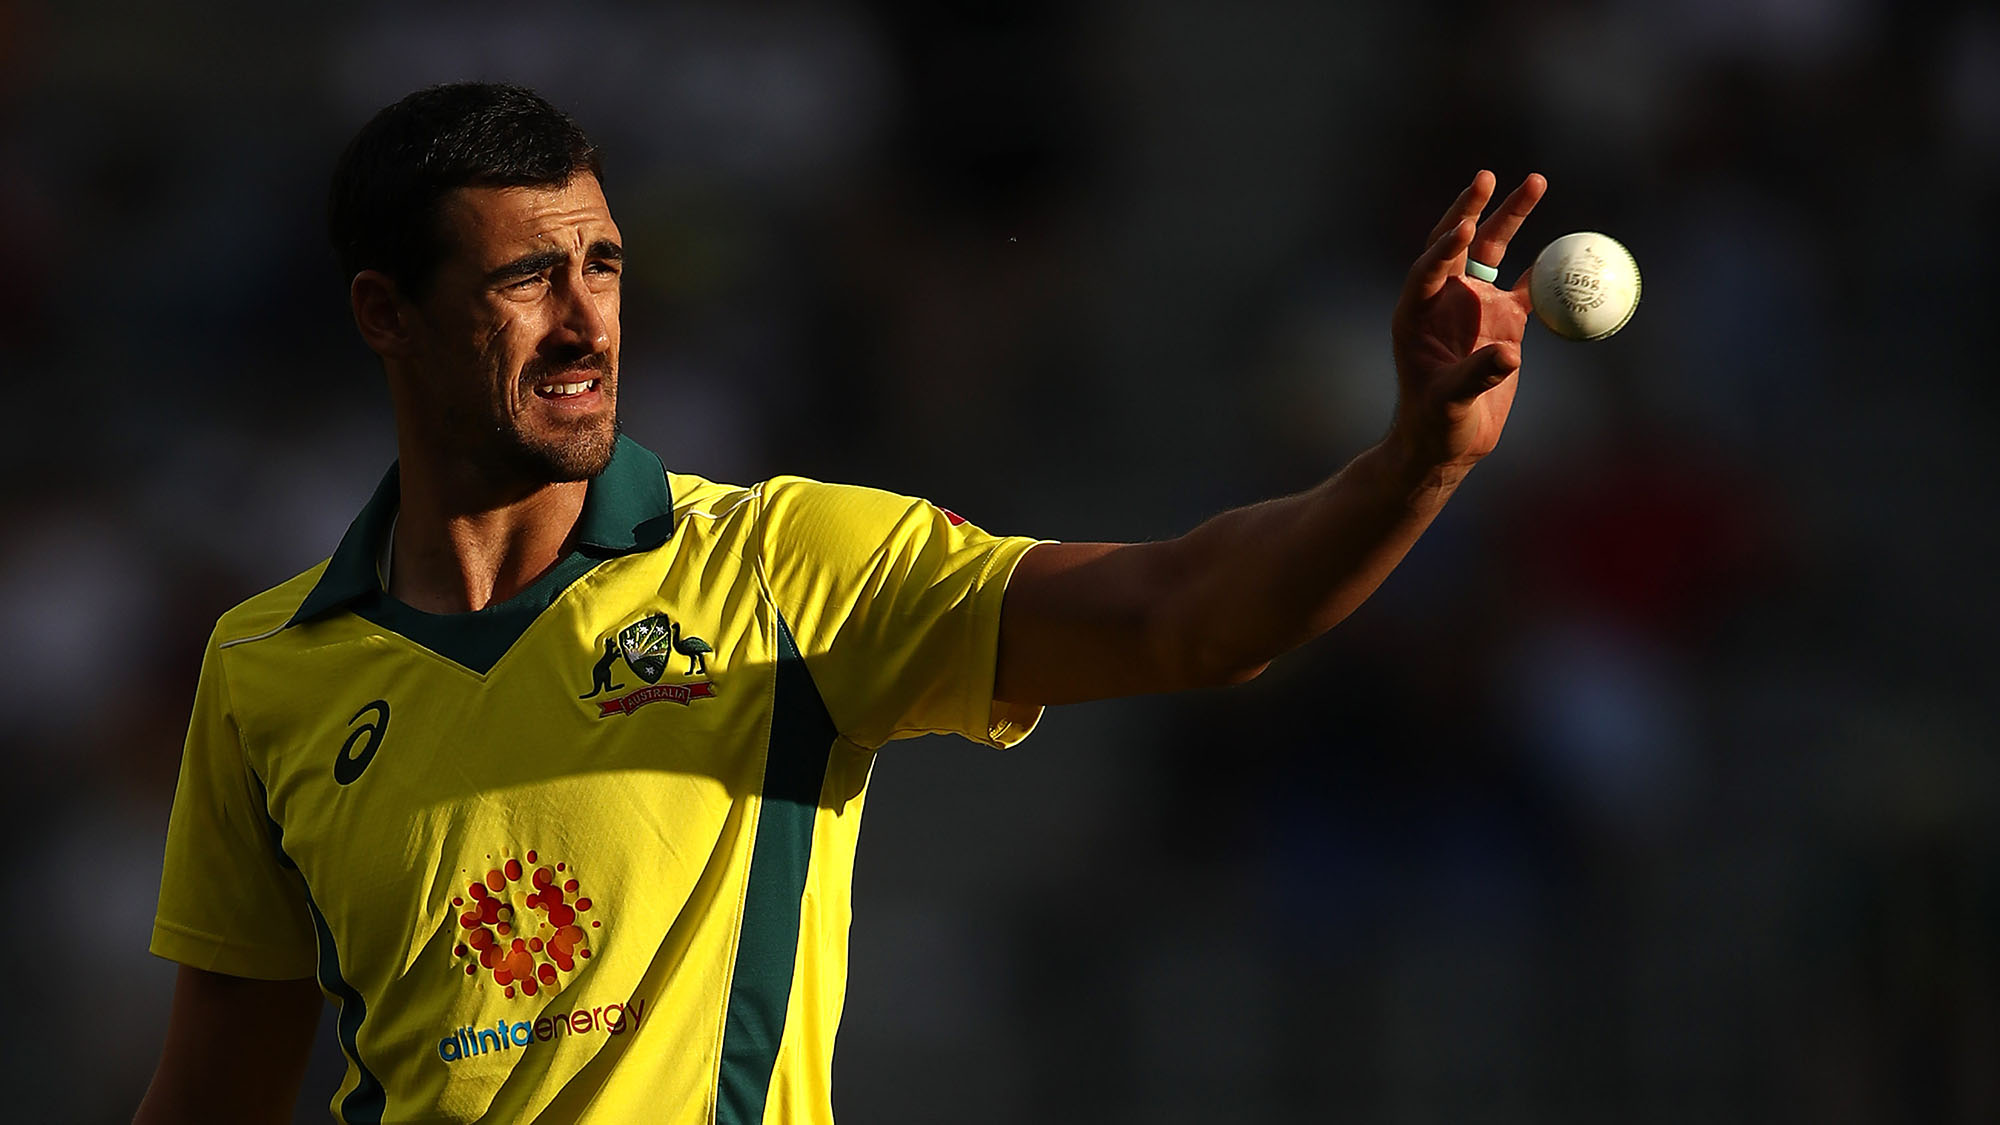 Mitchell Starc dumped by IPL team via text message, declares Test cricket his No.1 priority